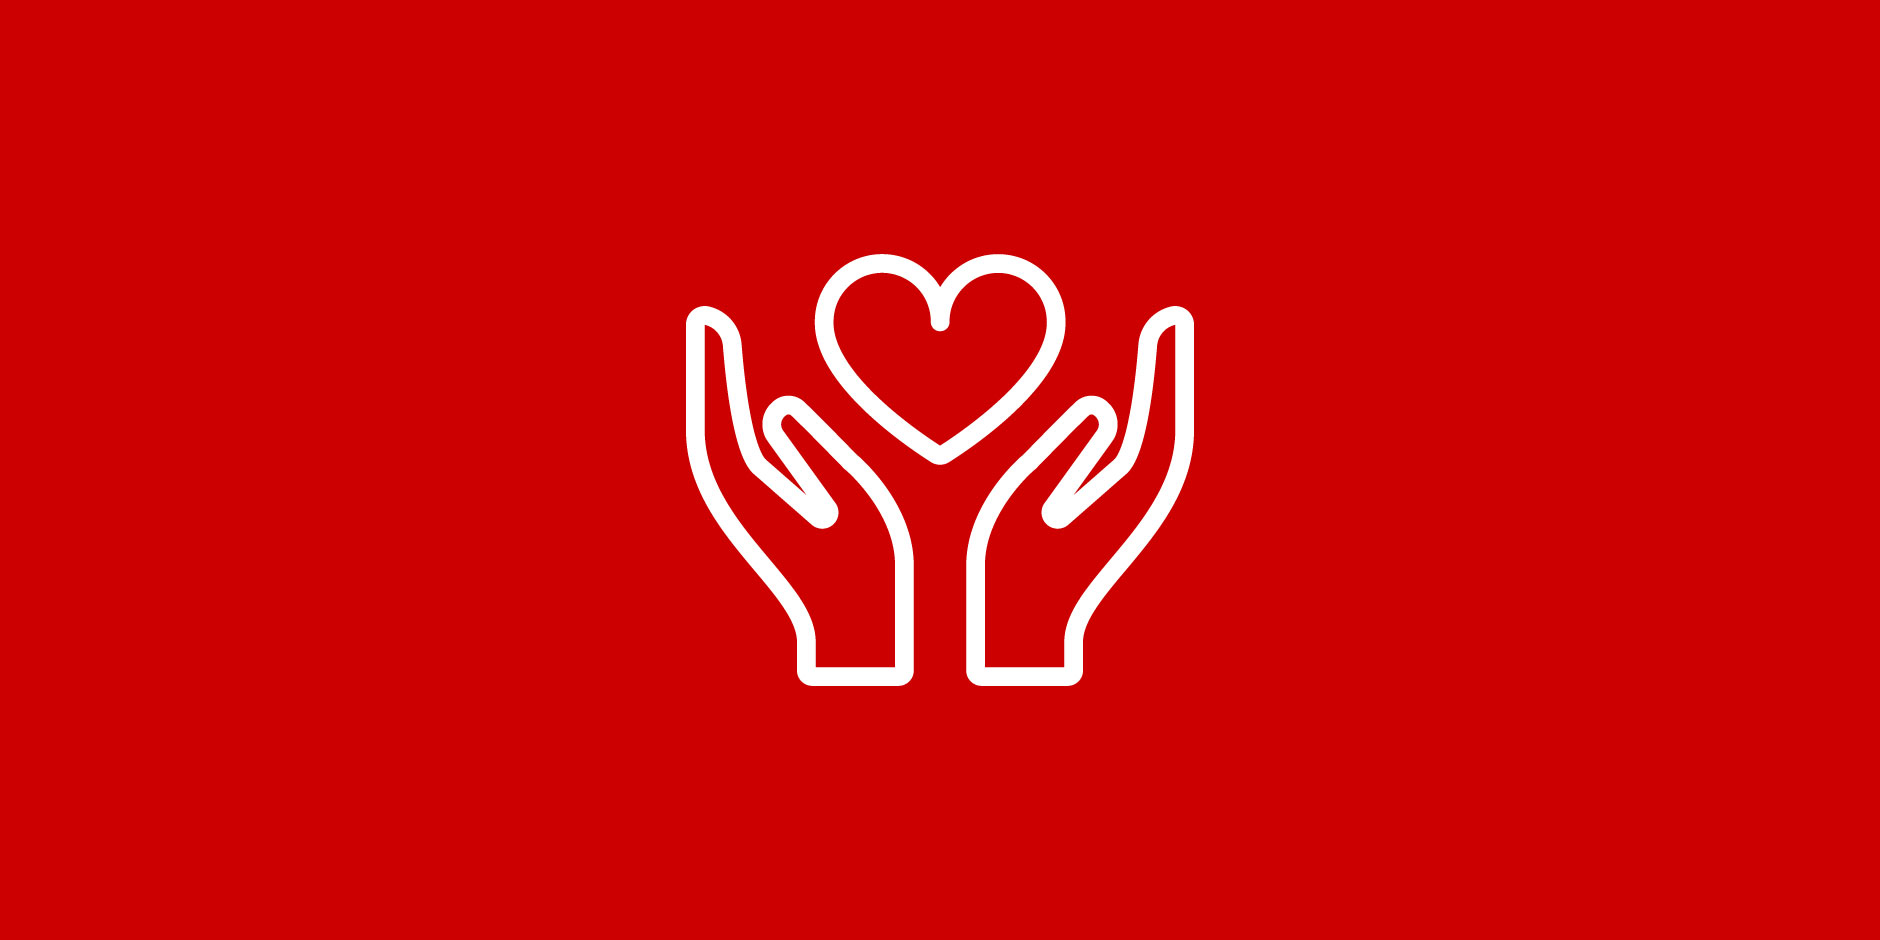 A white outline of two hands holding a heart on a red background.